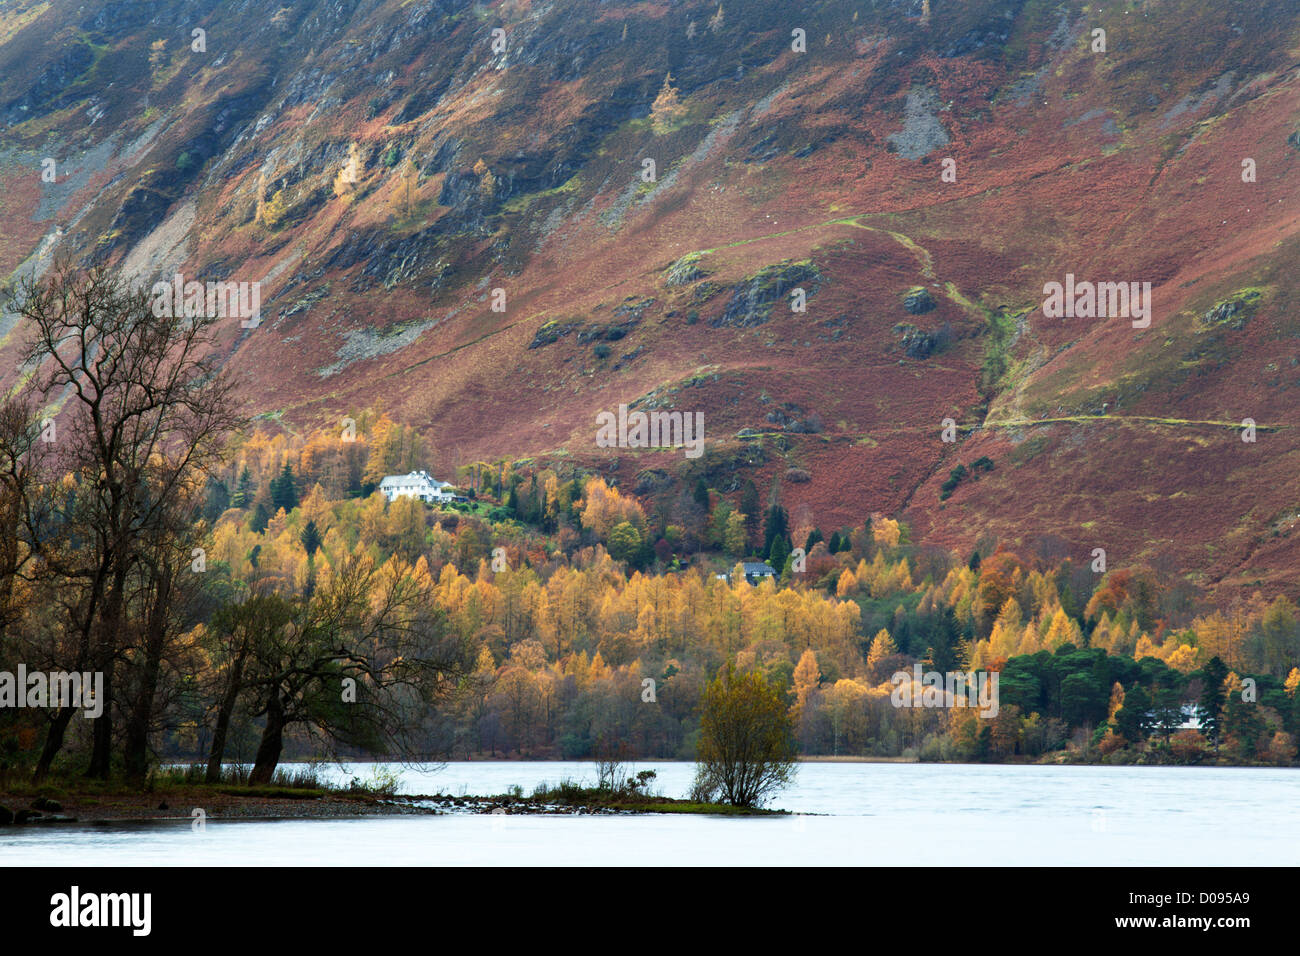 Derwentwater and the Slopes of Catbells in the Lake District Cumbria England - Stock Image